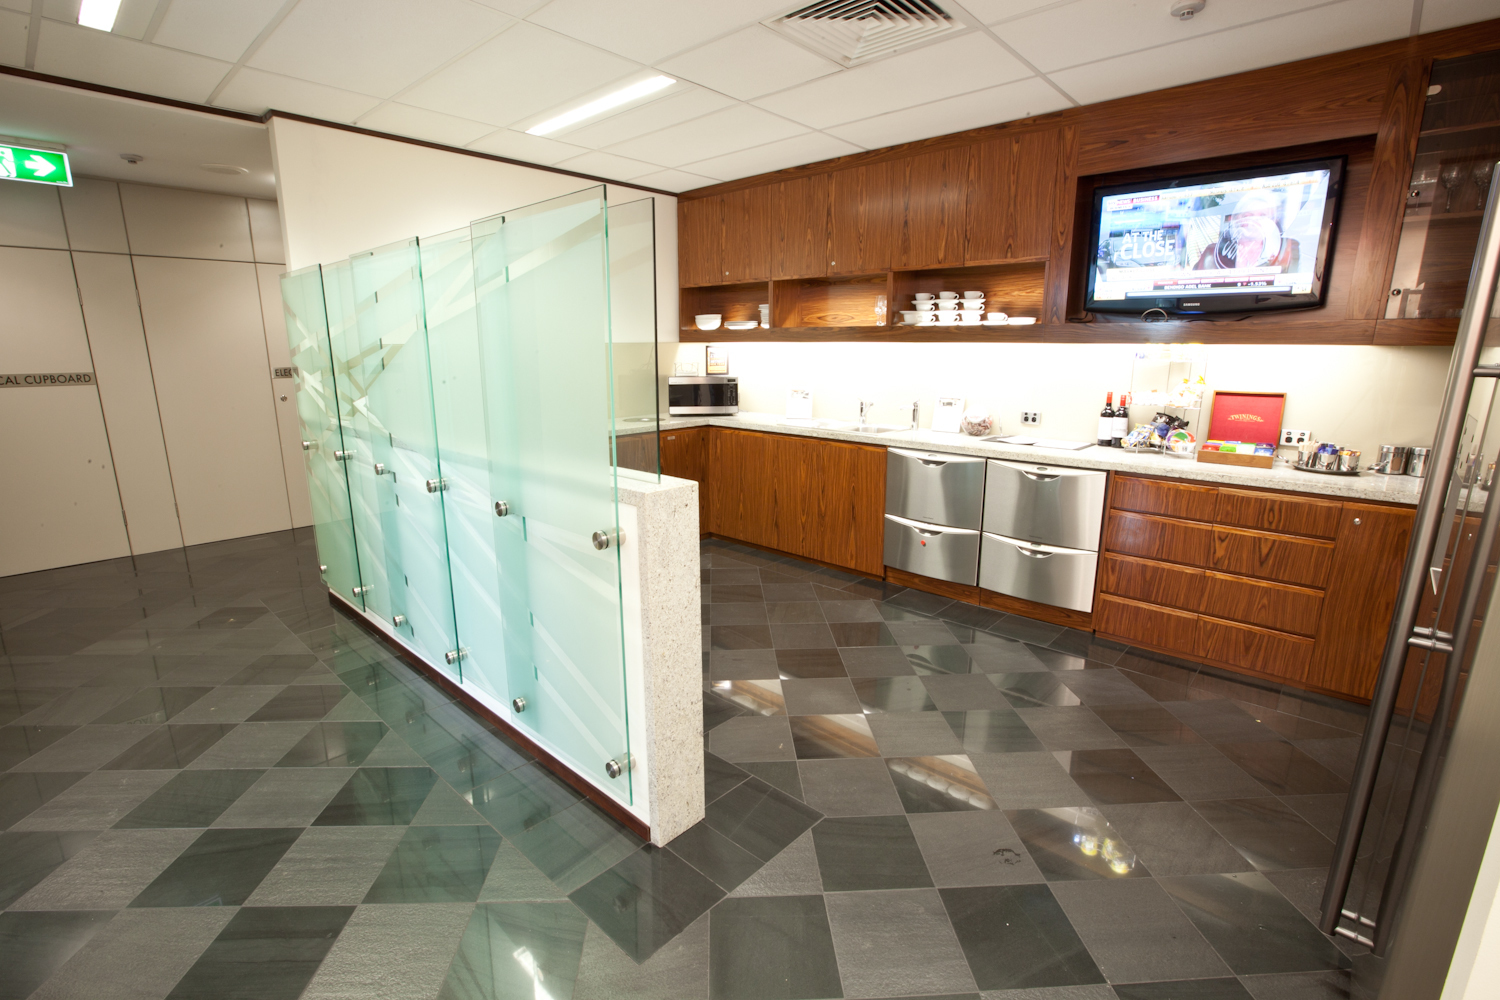 PREMIUM OFFICE AVAILABLE IN BAULKHAM HILLS WITH AMAZING VIEWS